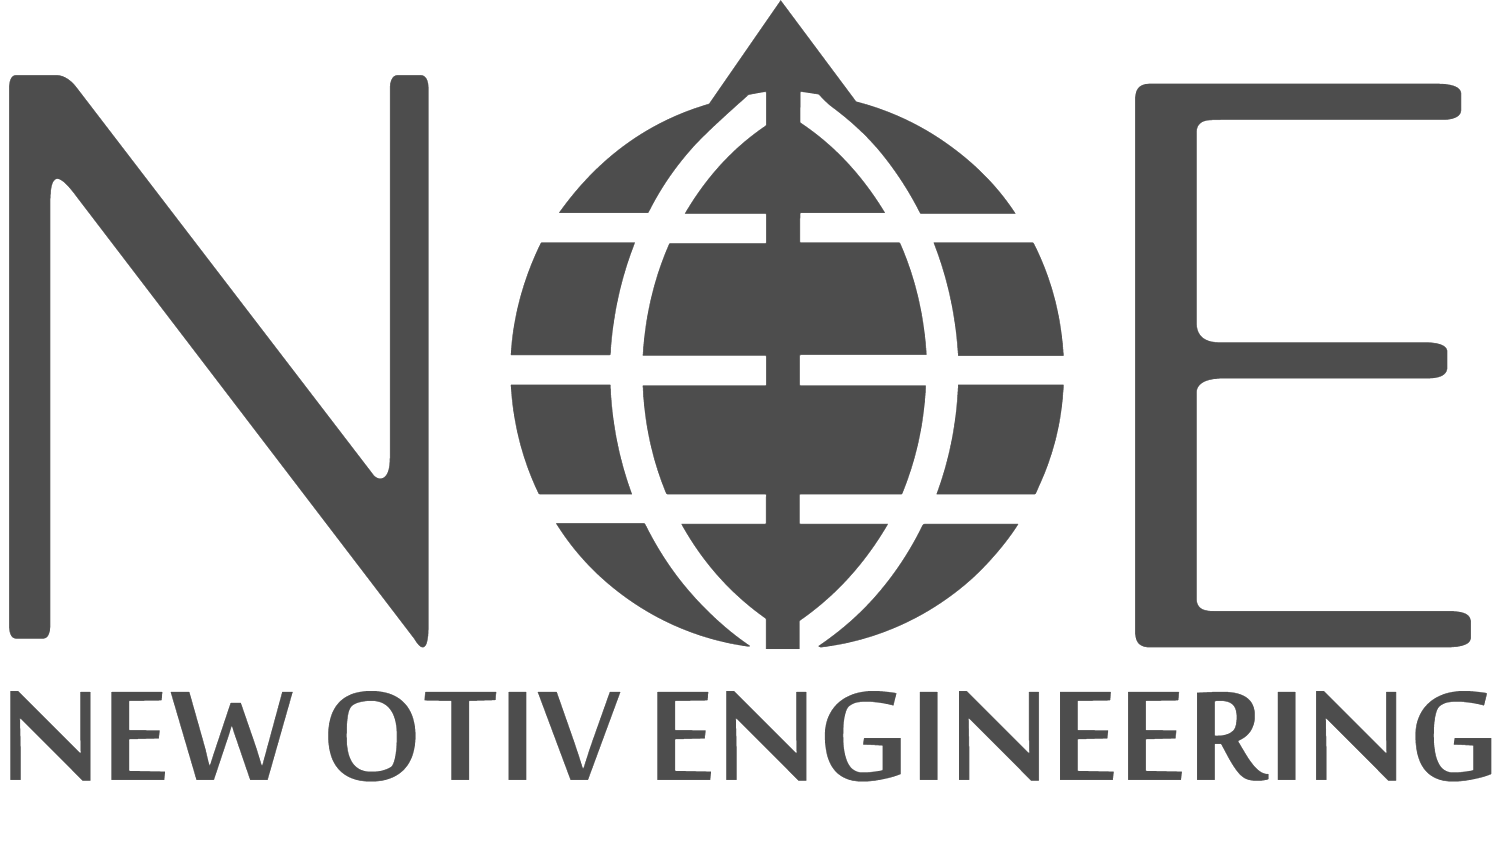 New Otiv Engineering